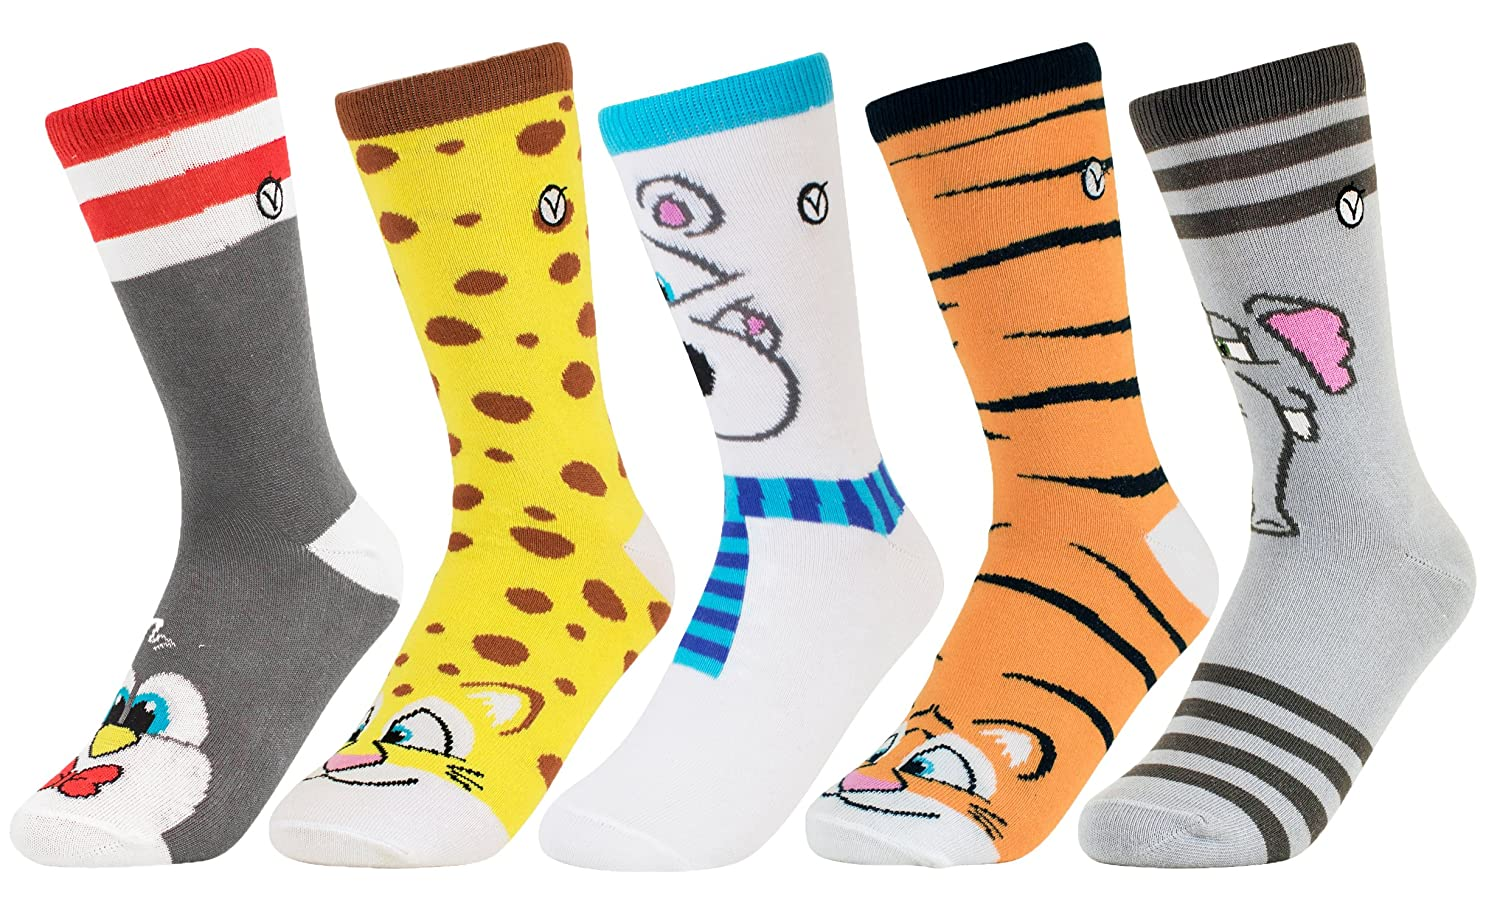 5 pack Stylish Casual Unisex Cotton Socks for Boys and Girls Kids 5 Pack Socks Fun Footwear By VYBE